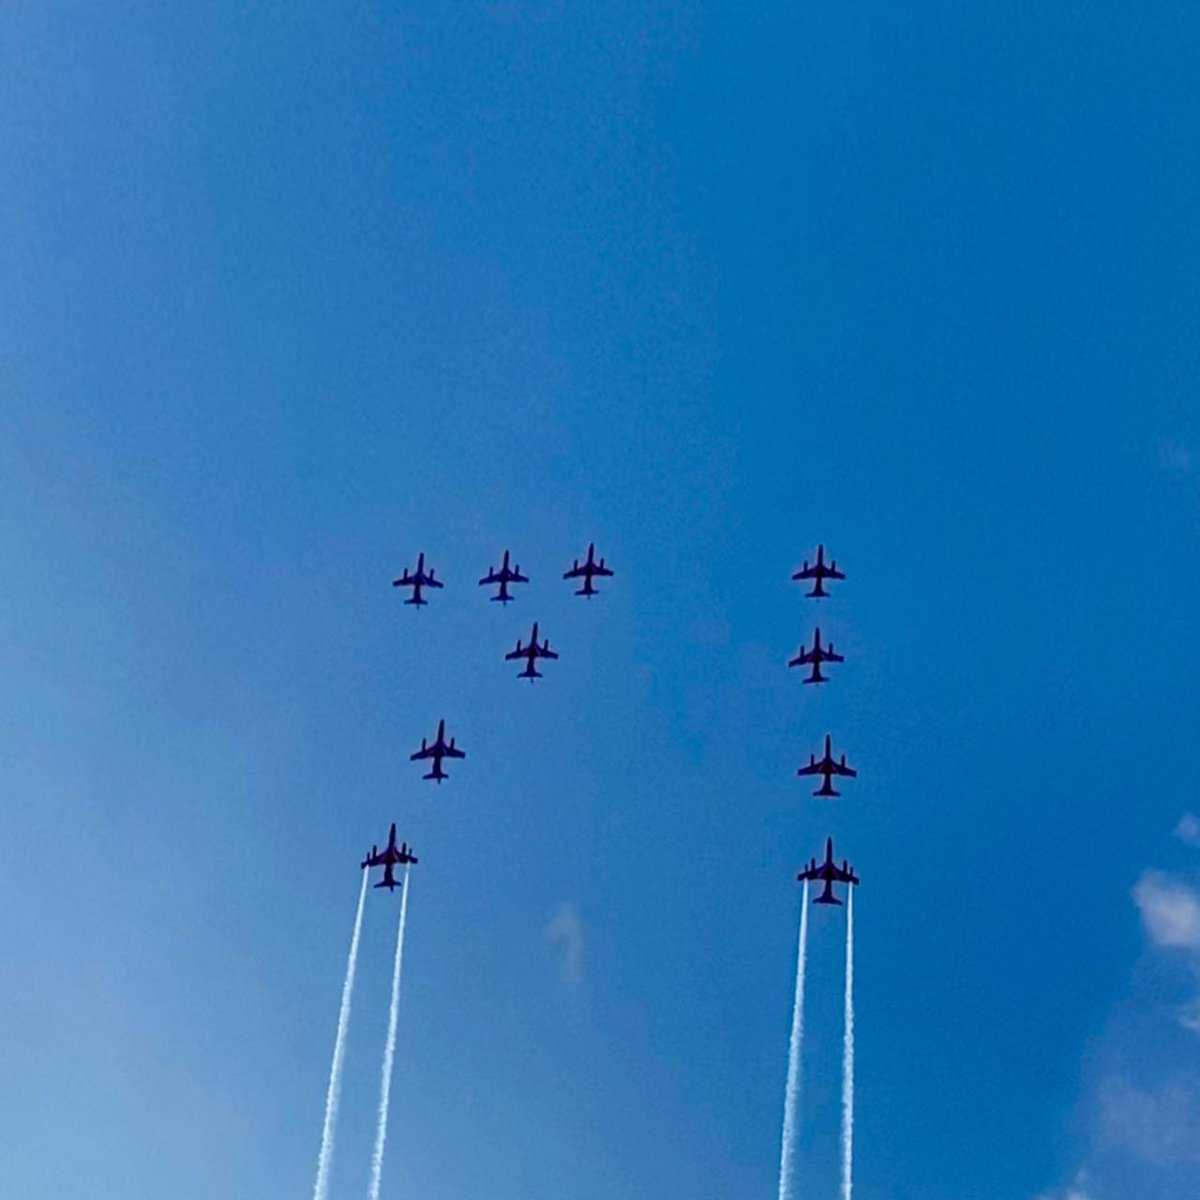 #SwarnimVijayVarsh  Here's a look at some visuals from the Flypasts by @Suryakiran_IAF from 17 to 24 Feb 21 to mark the Golden jubilee year of 1971 Indo- Pak war.  #IndianAirForce